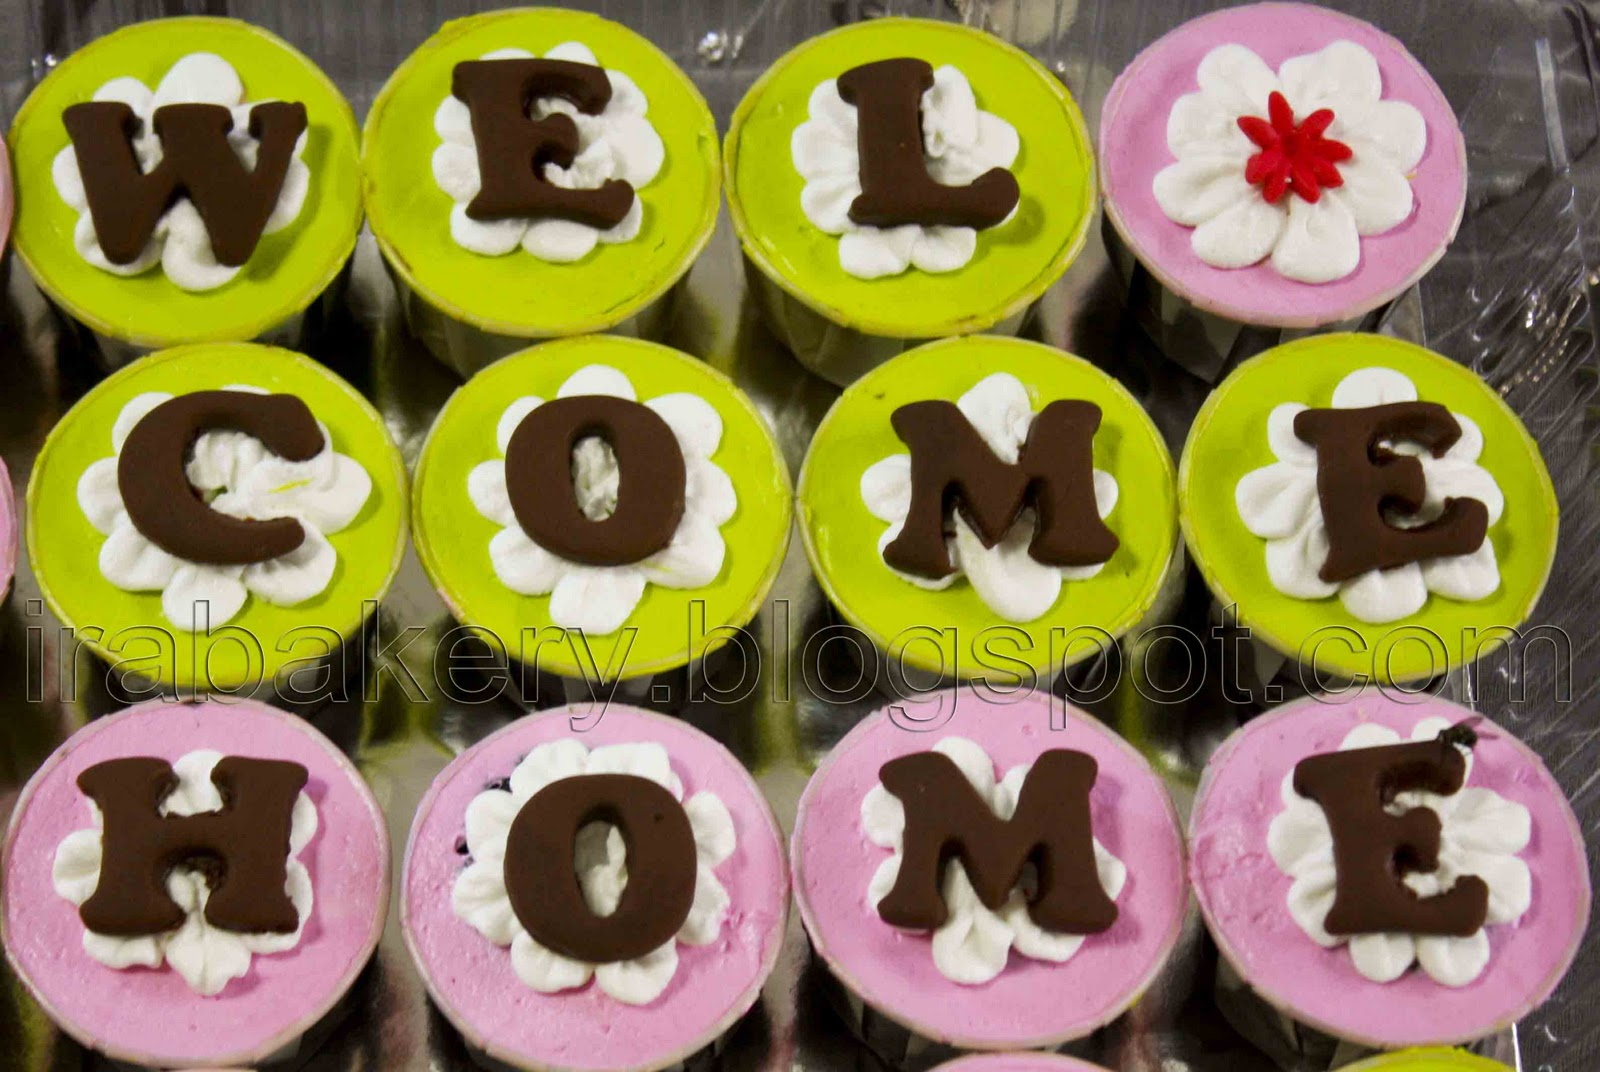 welcome home cupcakes design